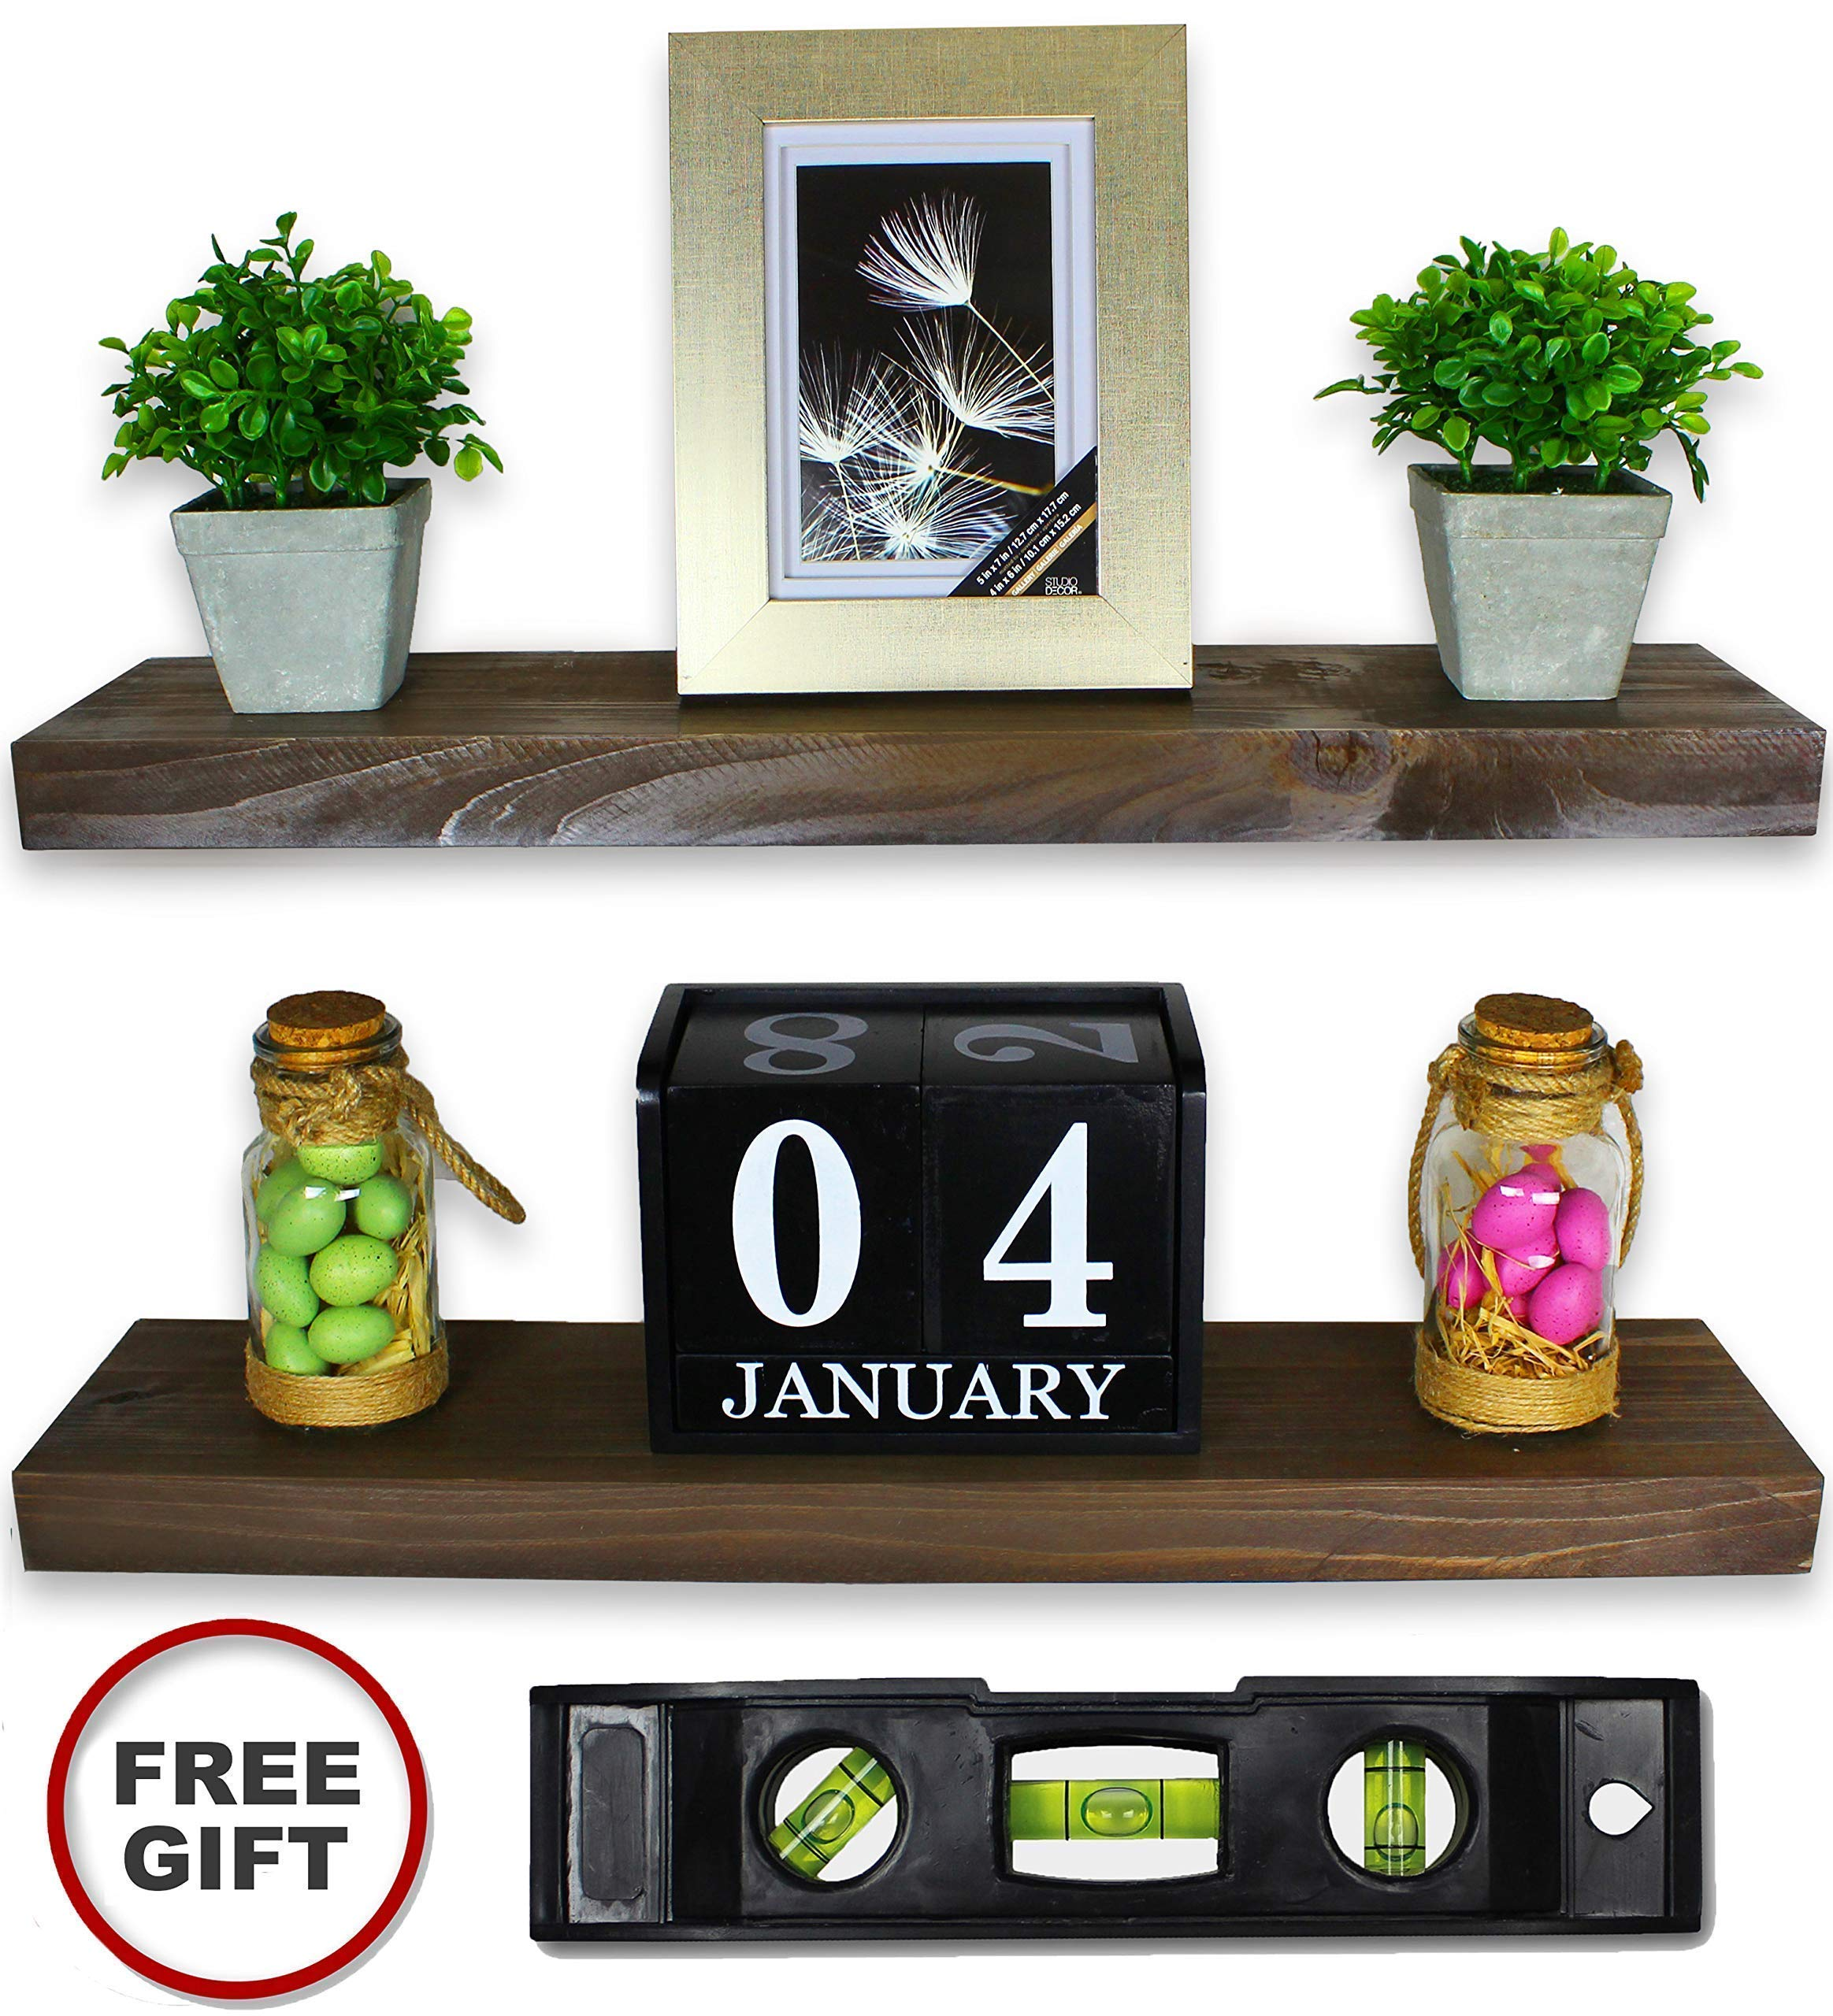 2 Set Floating Shelves - Real Wood Mounted Wall Shelf - Kitchen/Bathroom/Bedroom/Bedrooms/Living Room - 24in x 5.5in x 1.5in Hanging Shelf - Fir Wood W/Walnut Finish - Mounts and Level Tool Included